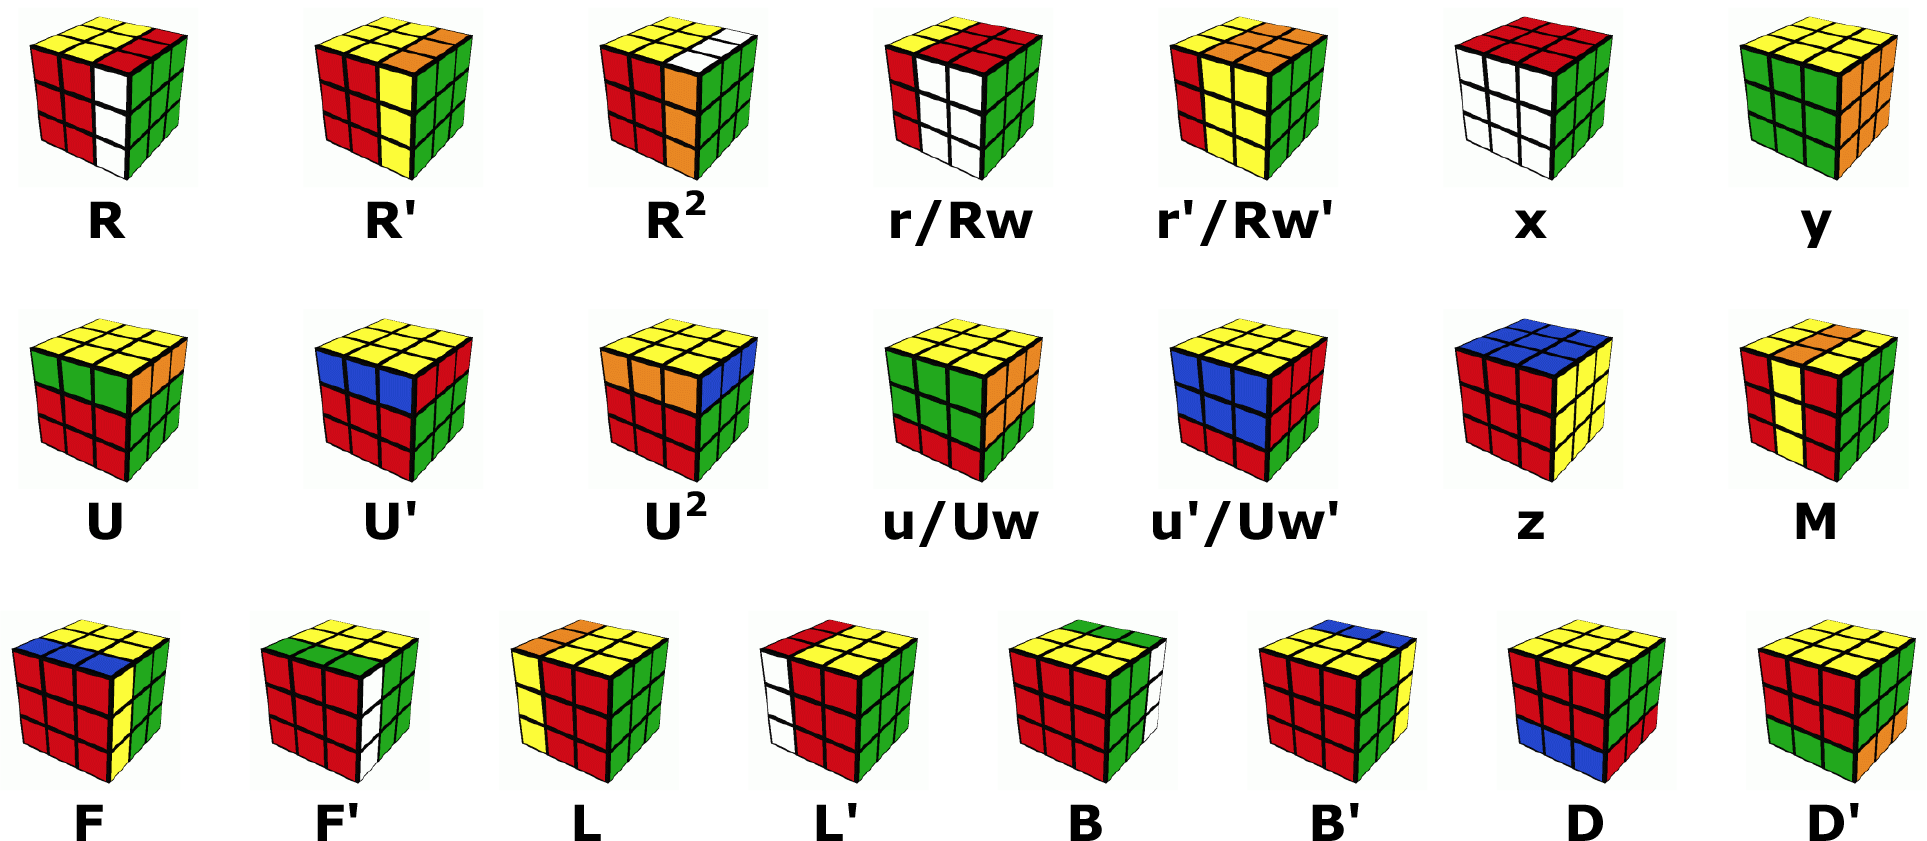 hight resolution of under the basic notation scheme r means turn the right face of the cube clockwise r r prime means turn the right face of the cube counterclockwise